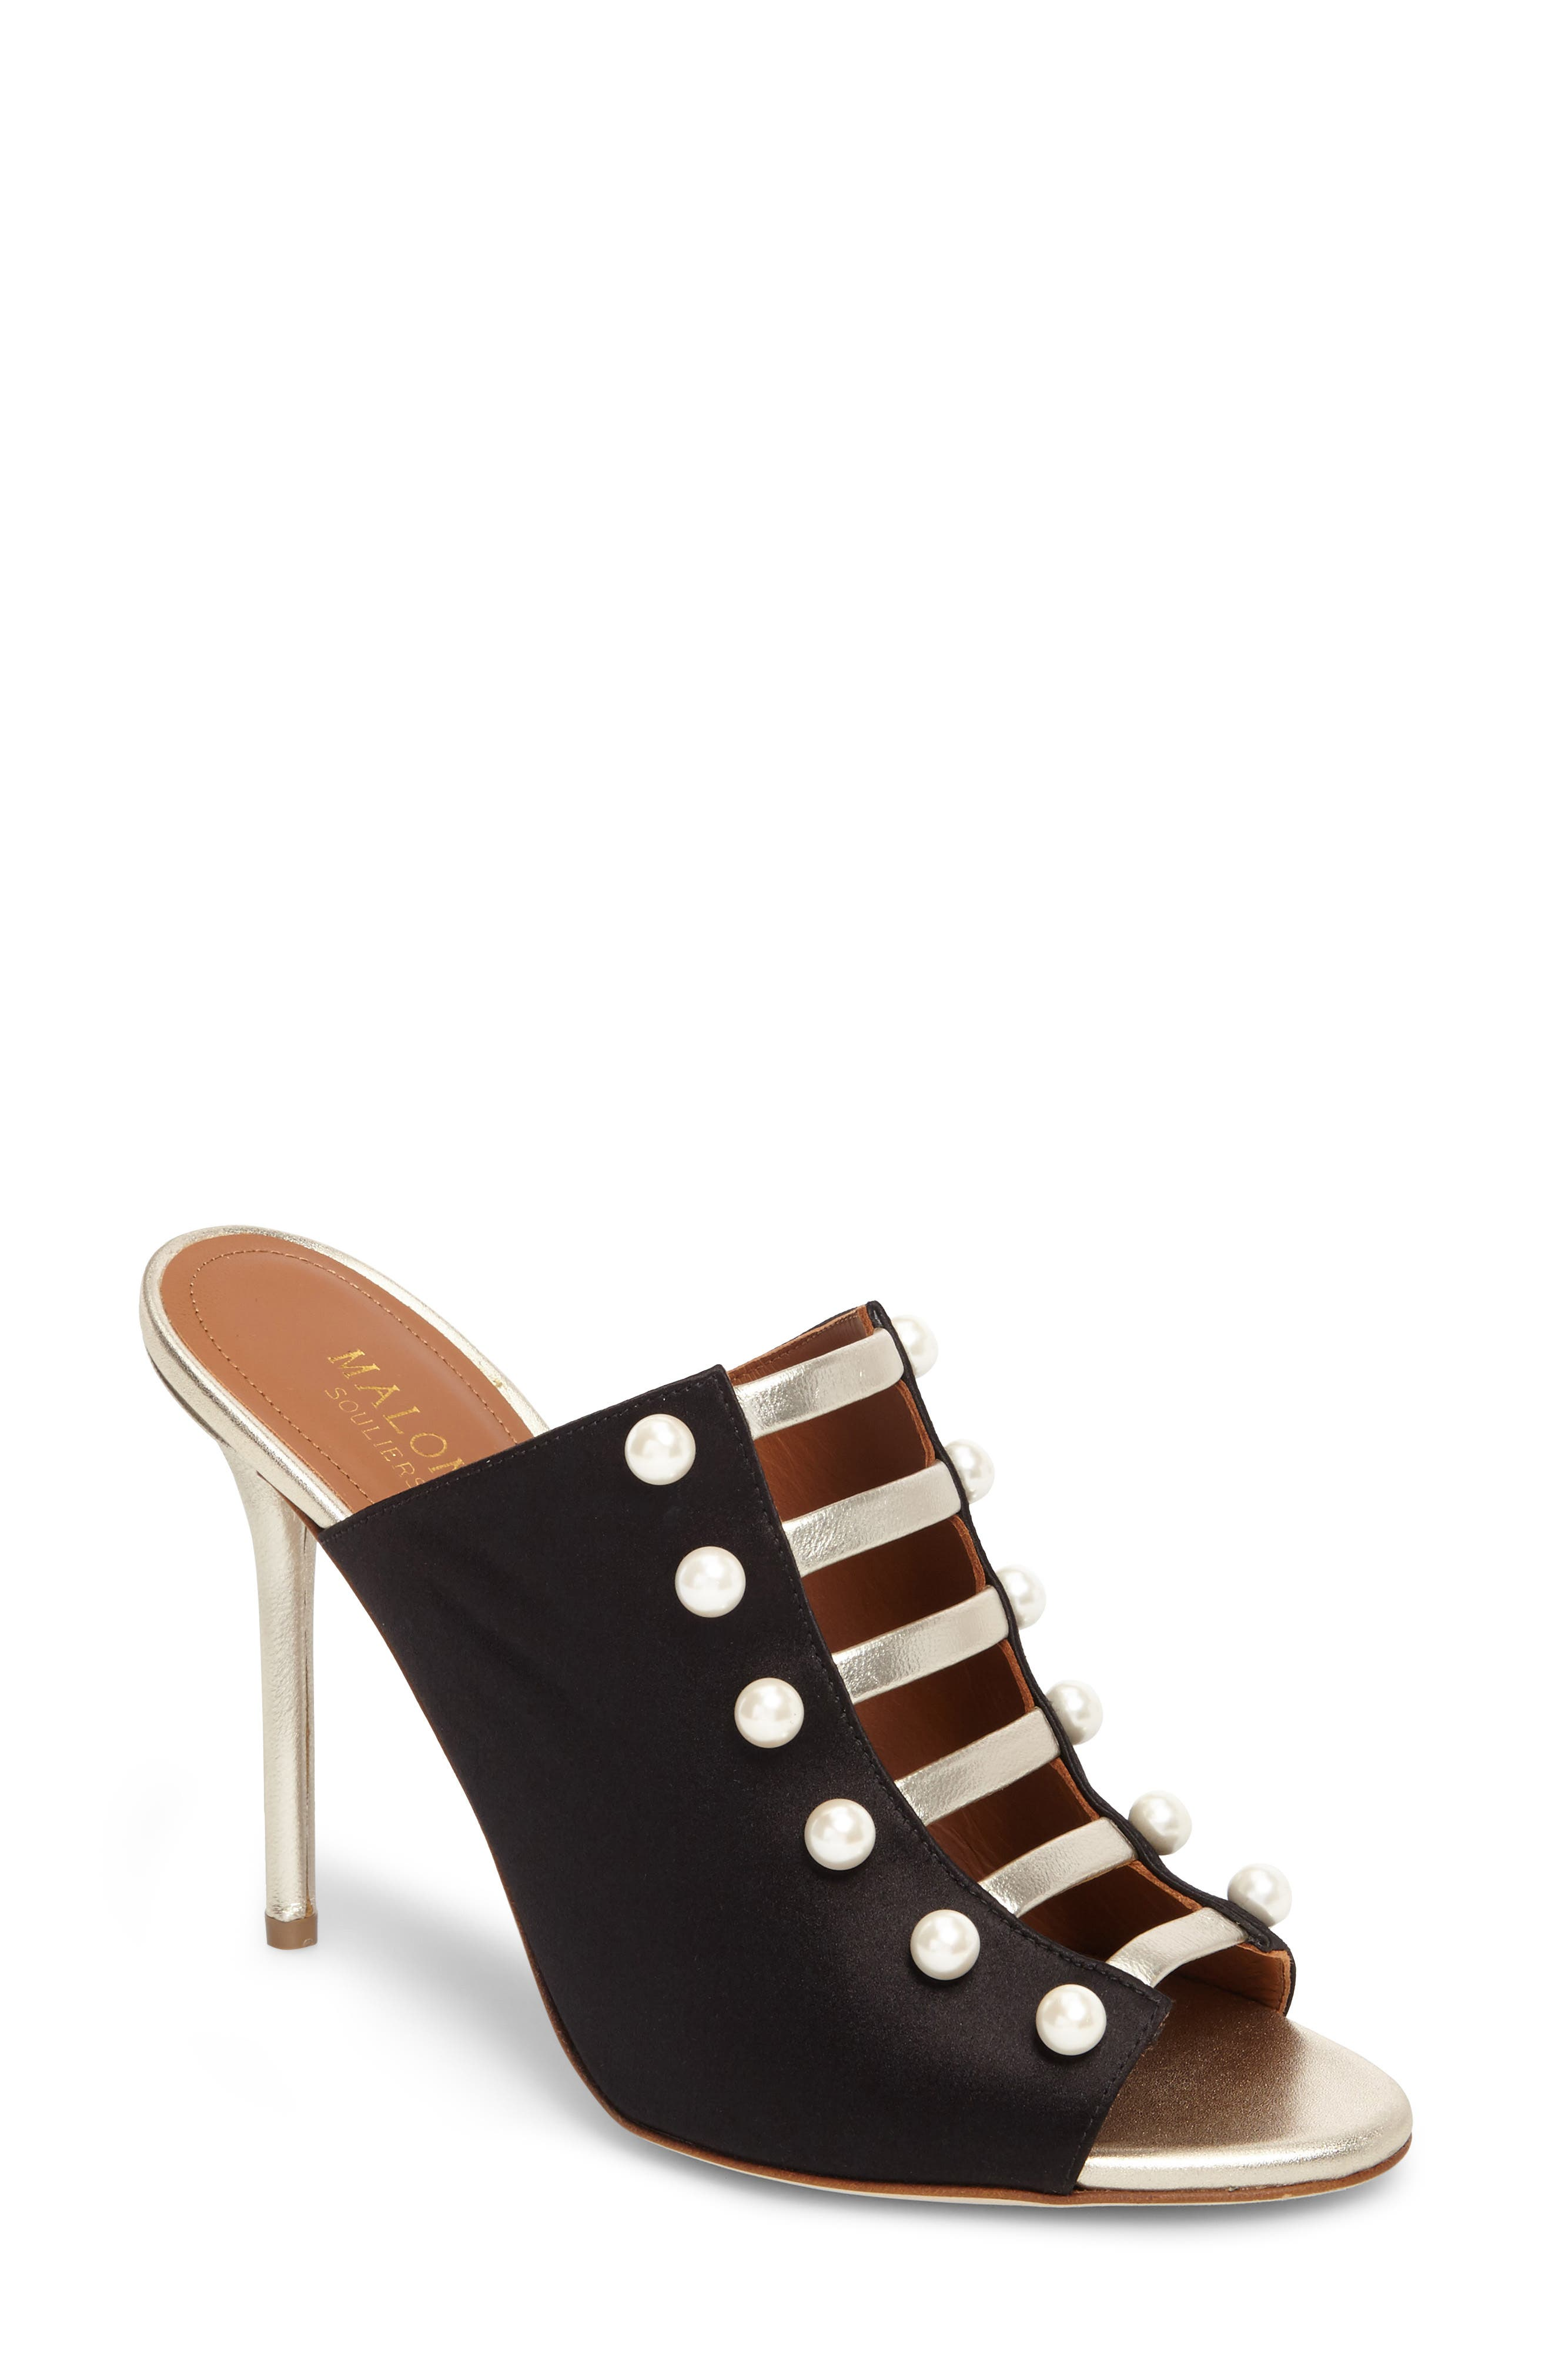 Imitation Pearl Studded Slide,                         Main,                         color, Black/ Platino